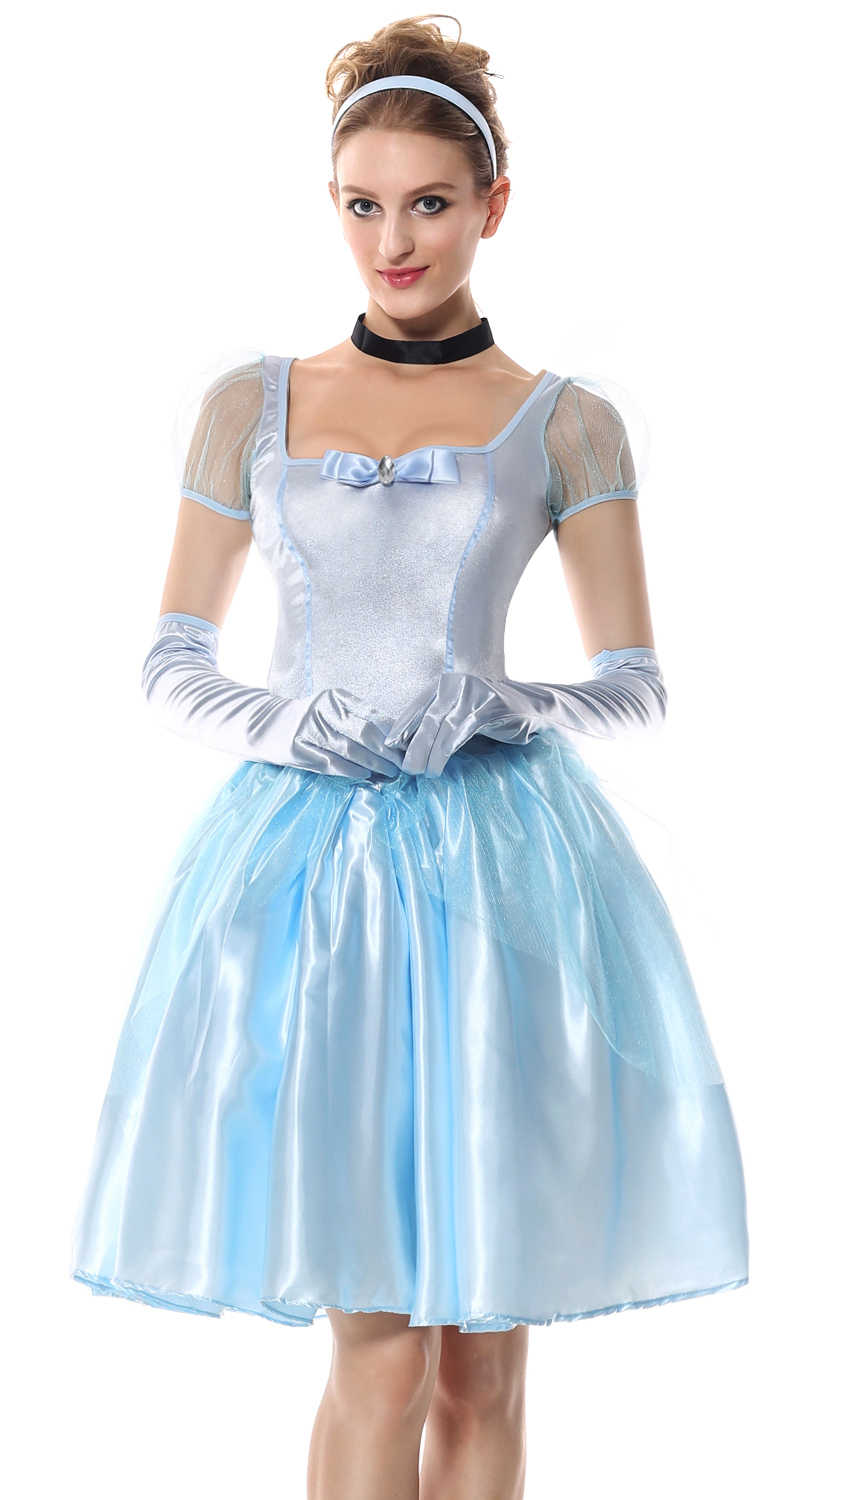 994add18a6a4 Fairy Tale Cinderella Costume Adult Princess Cinderella Dress Halloween  Costumes for Women Fantasy cosplay Costume